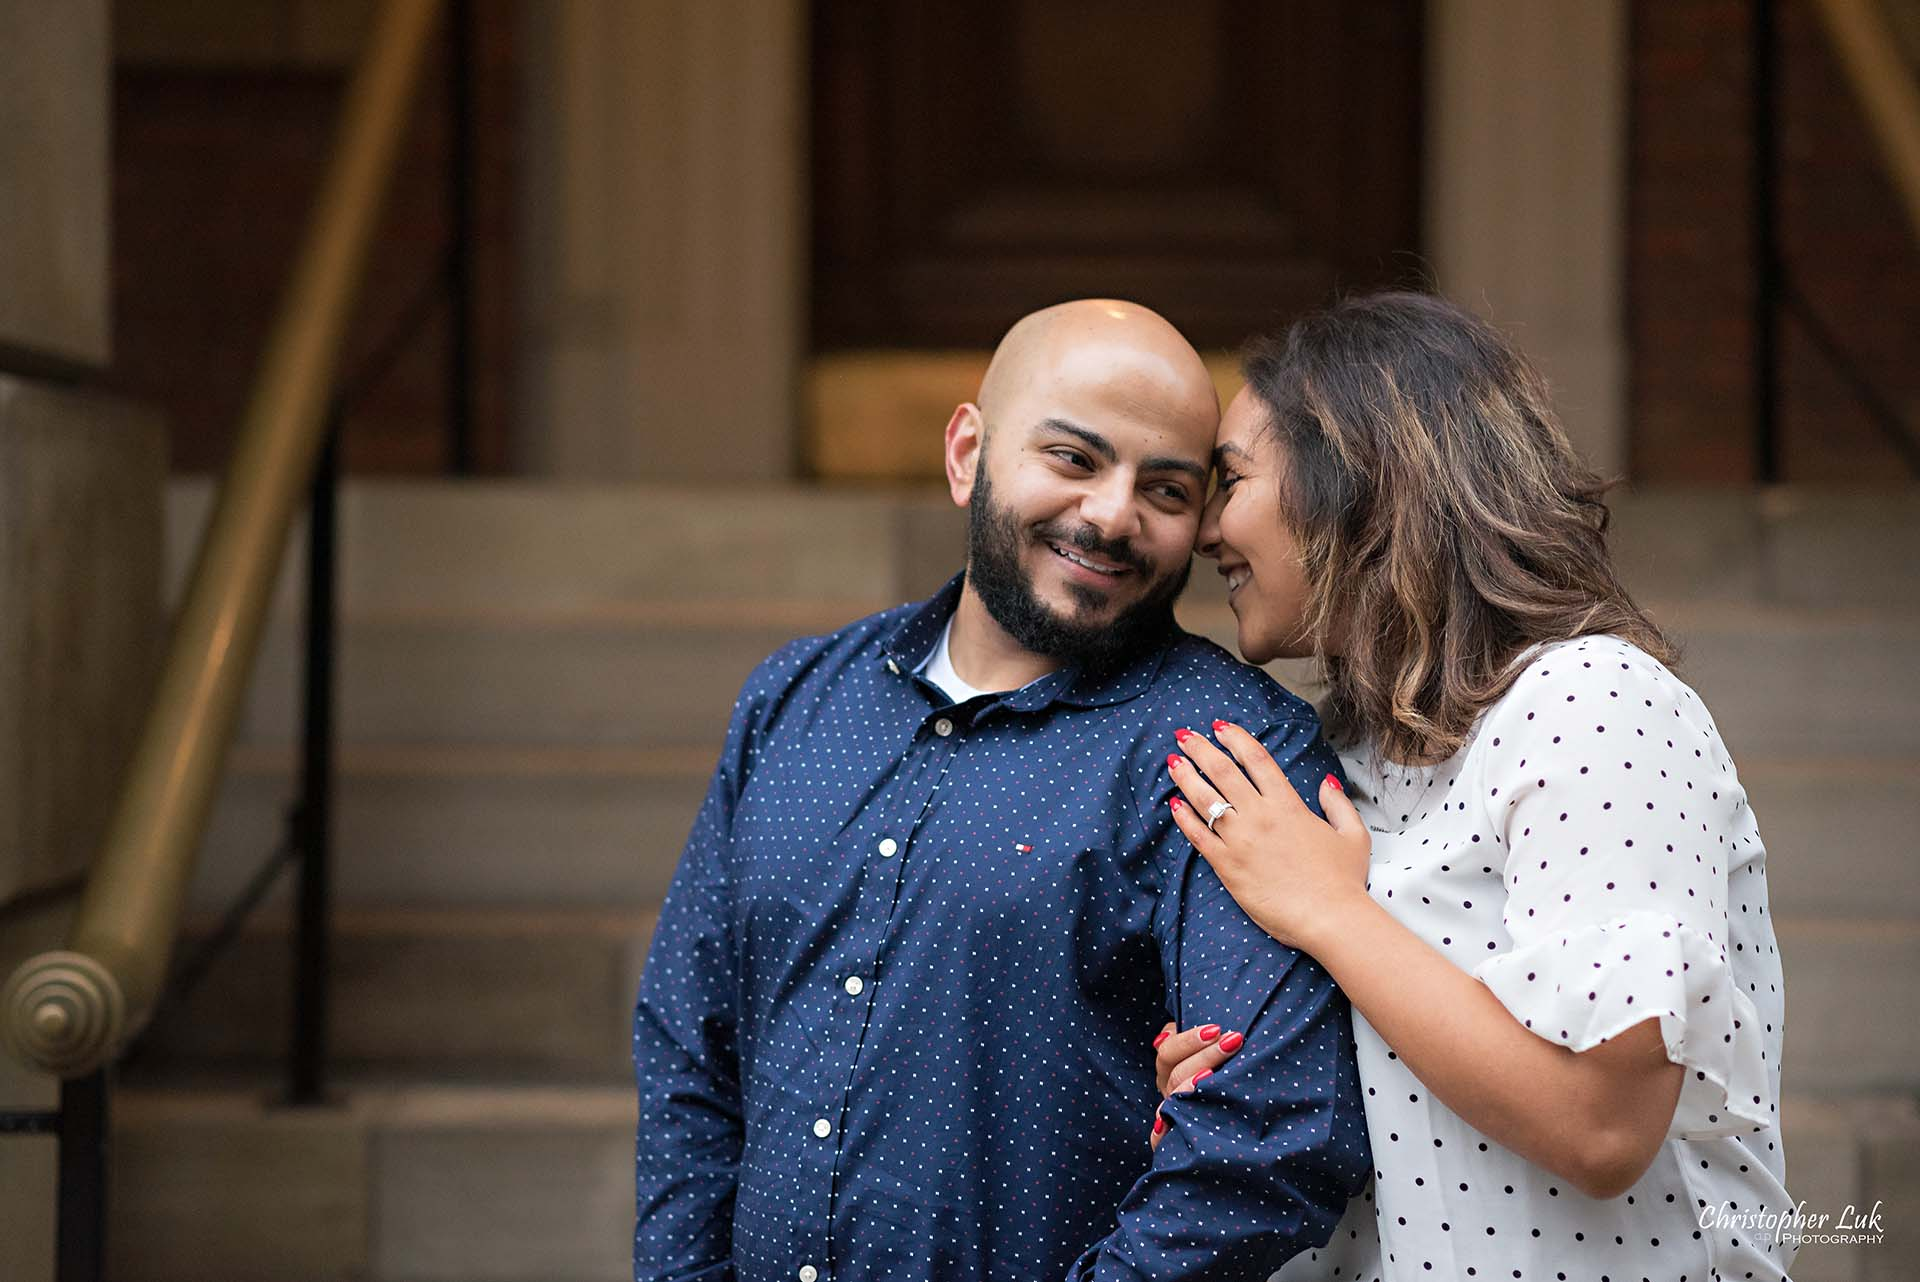 Christopher Luk Toronto Wedding Photographer - Toronto Osgoode Hall Surprise Proposal Engaged Engagement Will You Marry Me She Said Yes Natural Candid Photojournalistic - Fiancé Fiancée Bride Groom Hug Arm Close